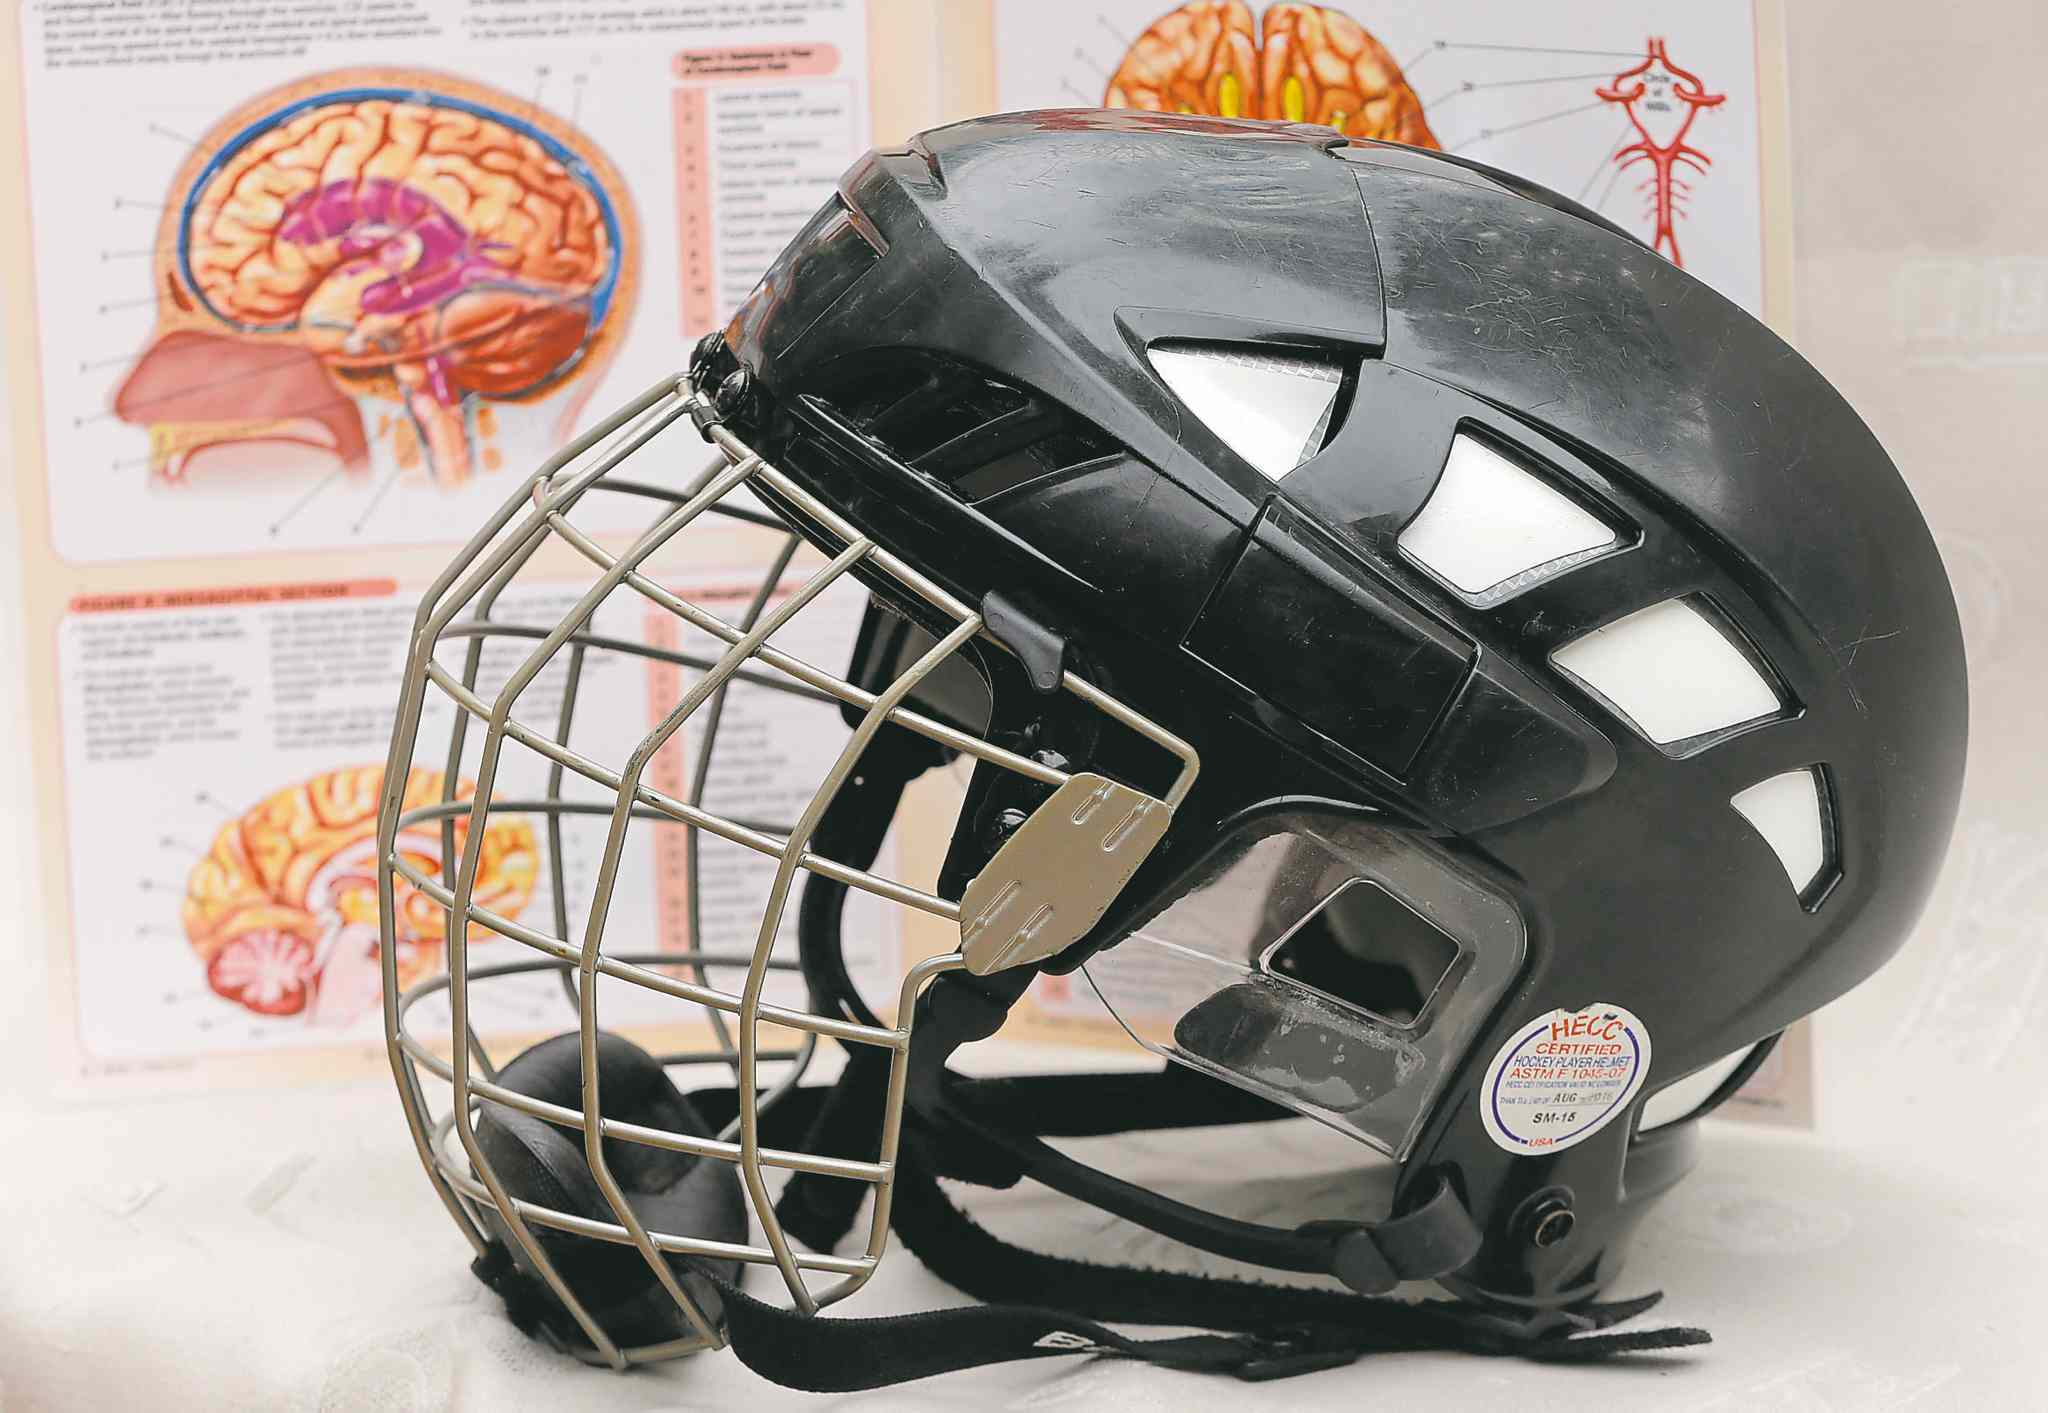 The Pan Am Concussion Program, led by Dr. Michael Ellis, has opened a clinic that solely focuses on treating and researching youth head injuries.